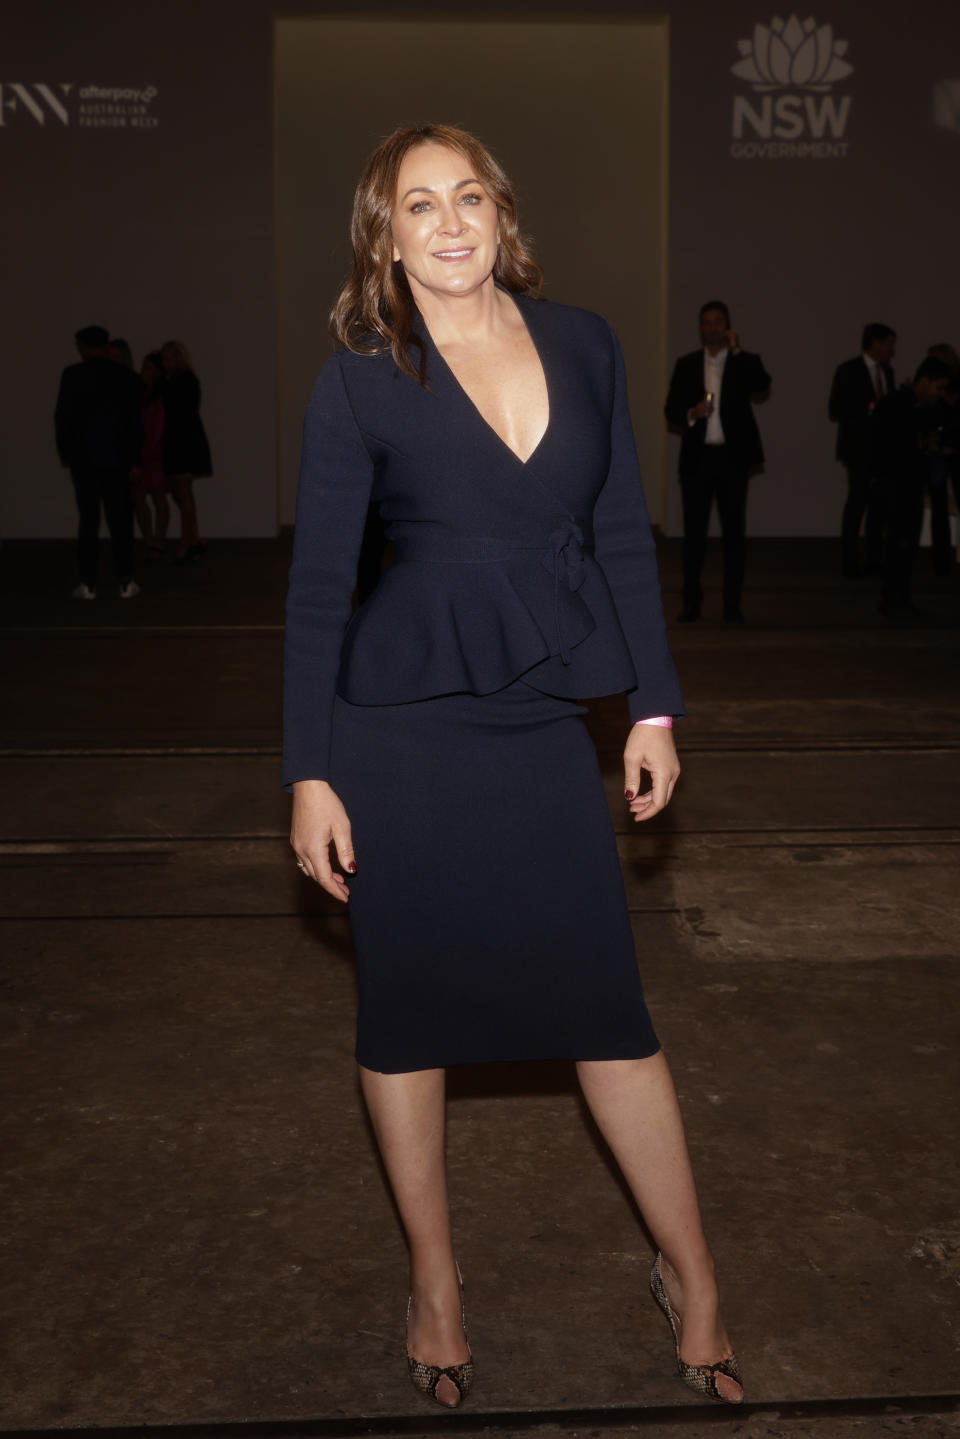 Michelle Bridges wears a navy dress at the Rebecca Vallance show during Afterpay Australian Fashion Week 2021 Resort '22 Collections at Carriageworks on May 31, 2021 in Sydney, Australia